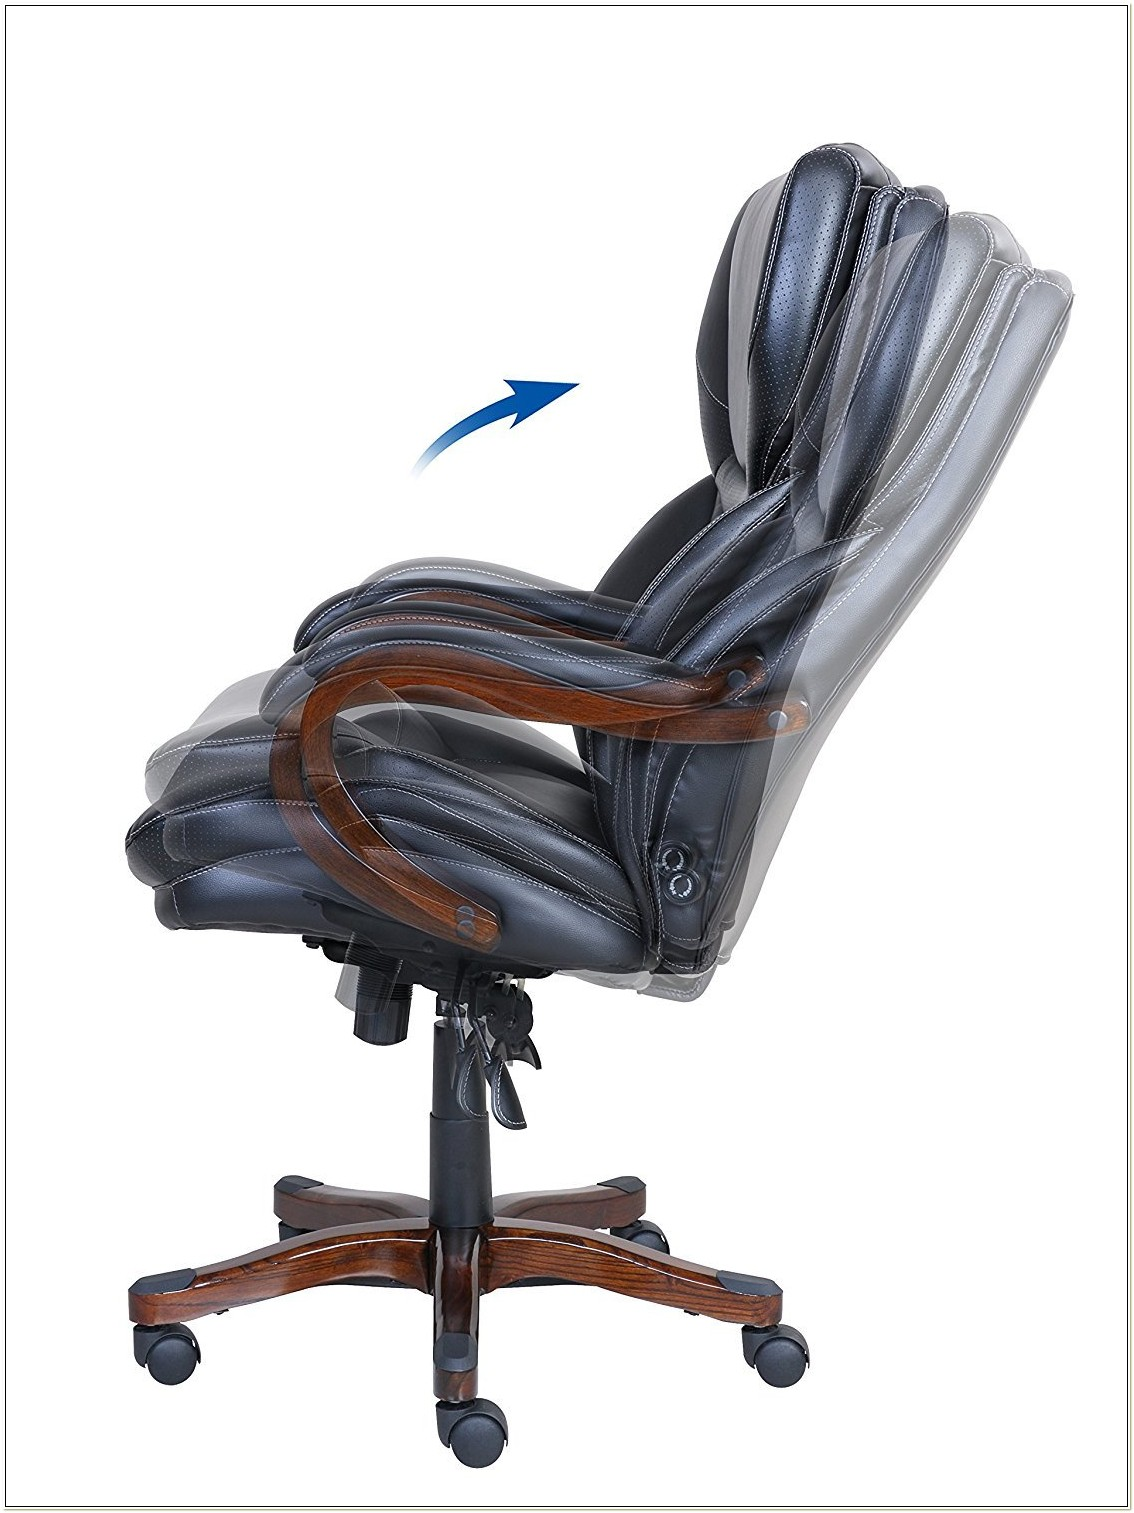 Serta Executive High Back Chair Manual